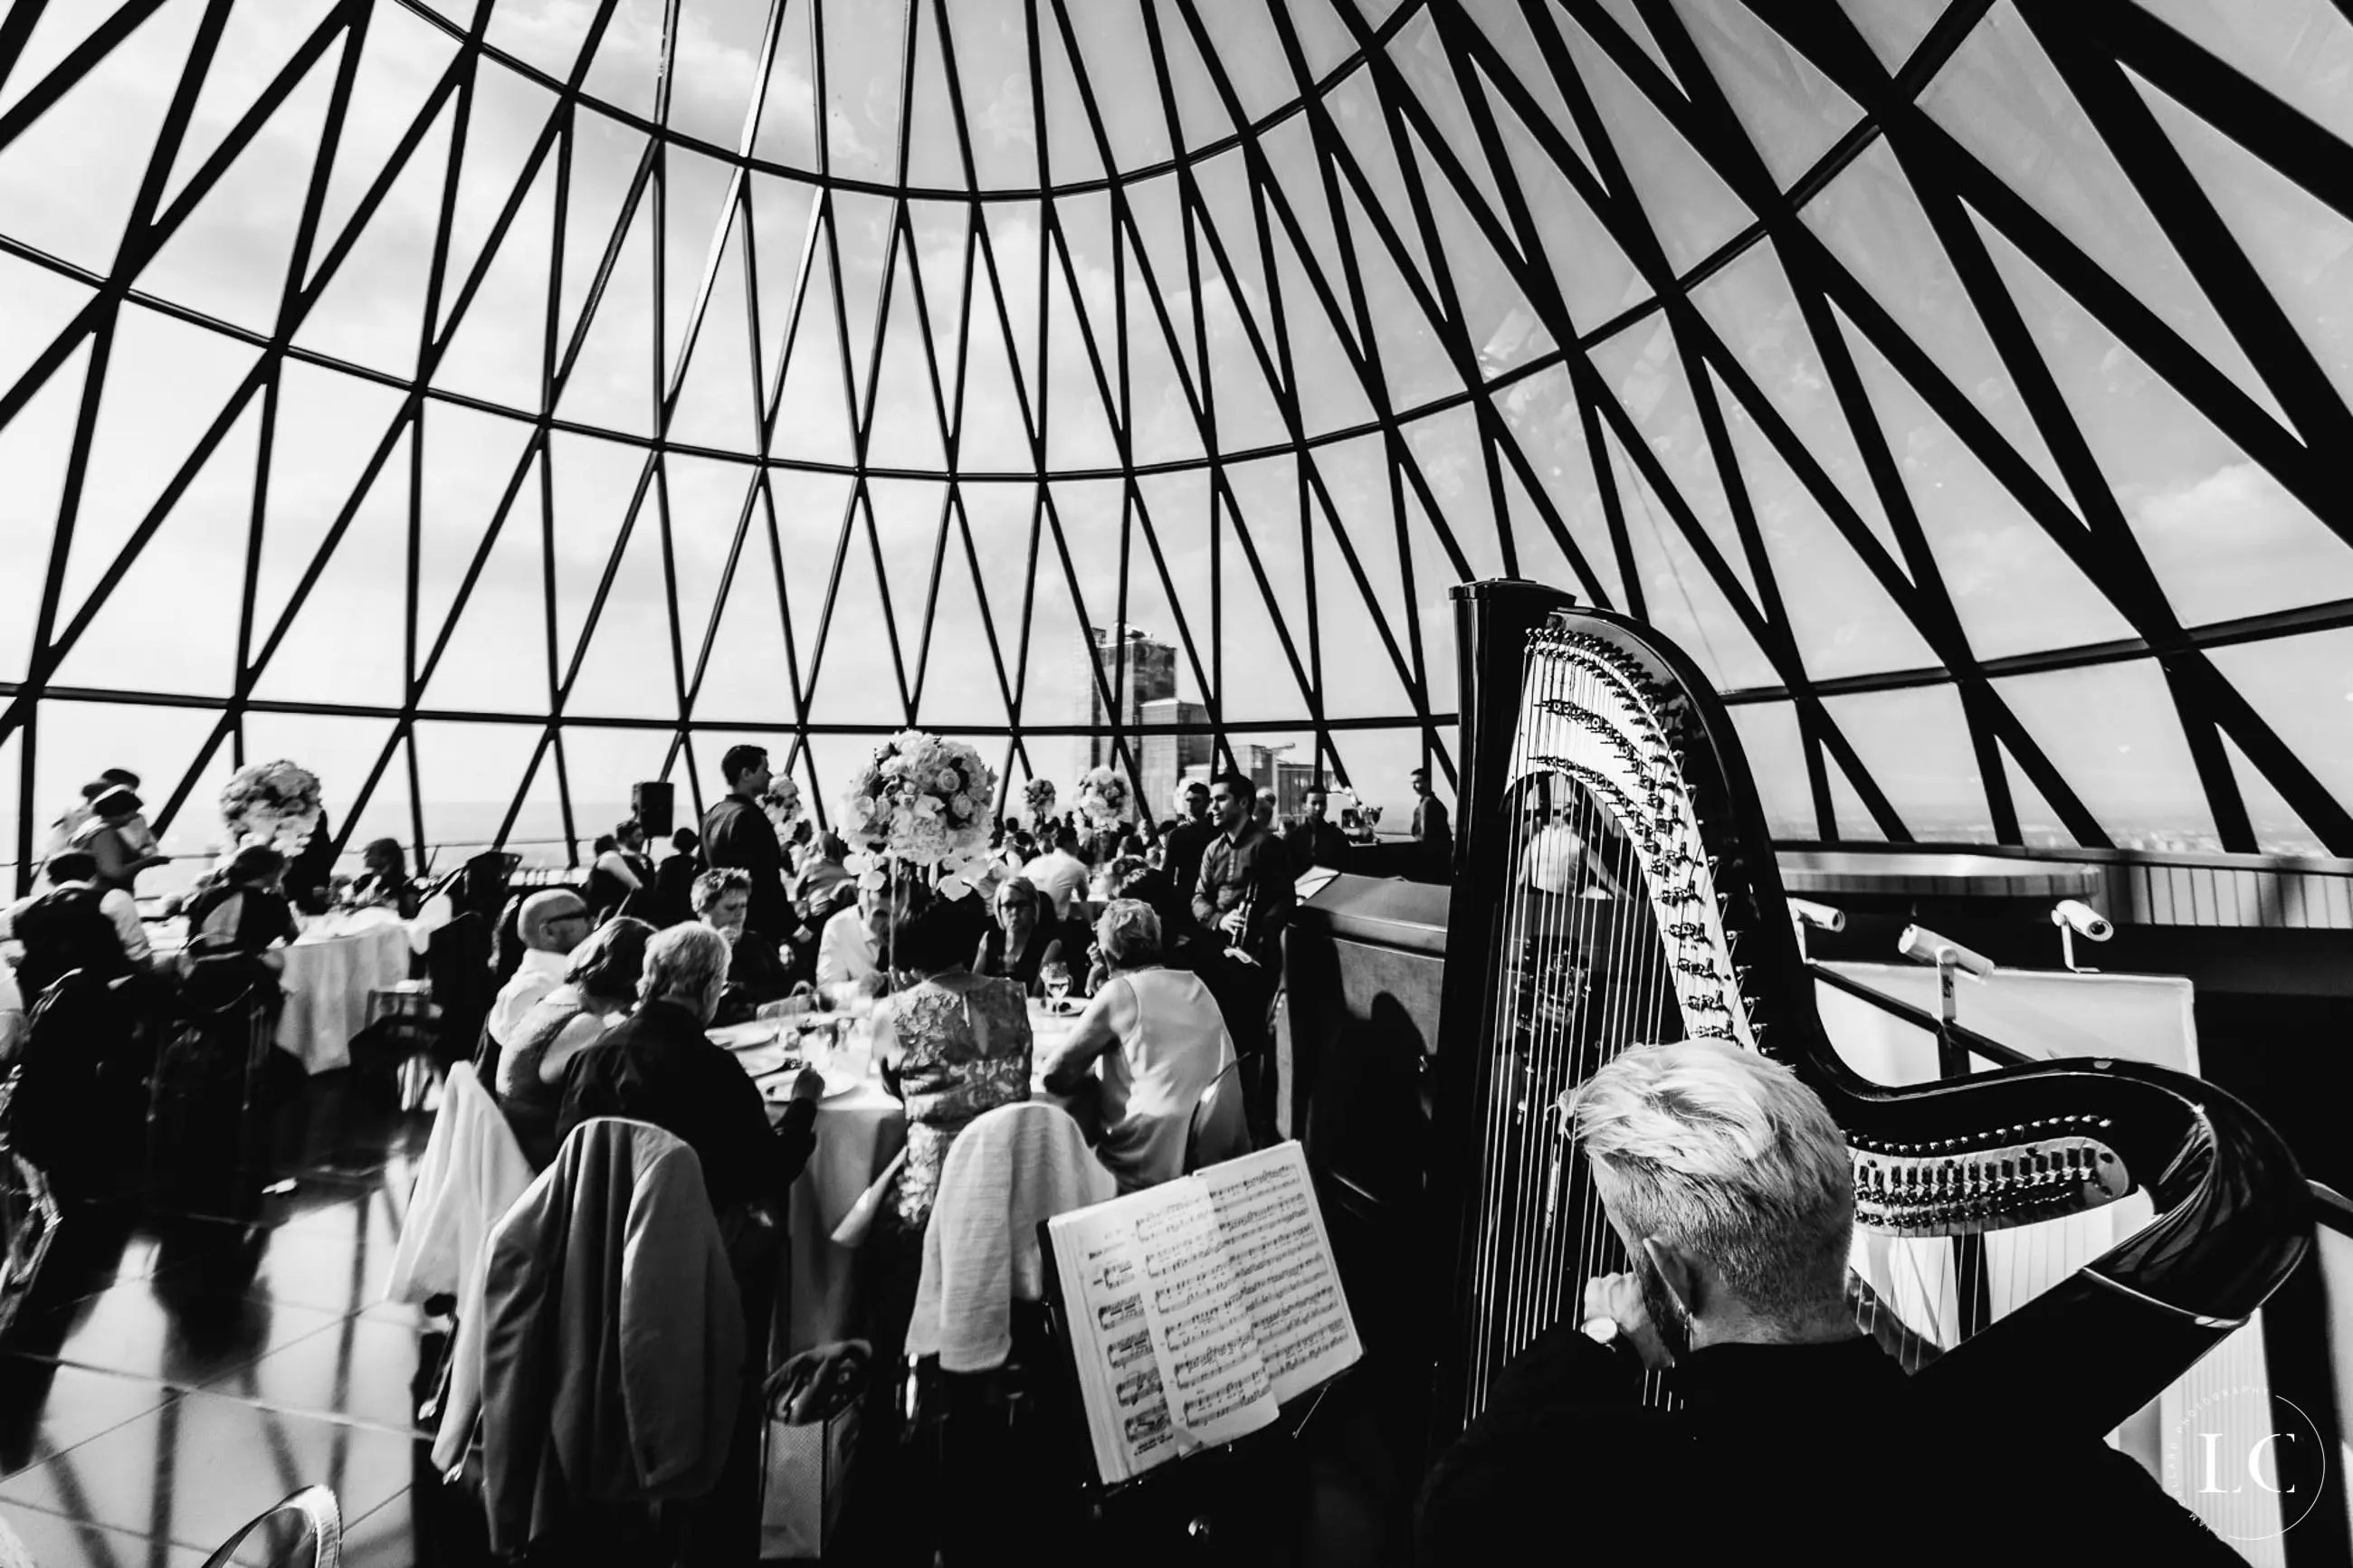 Black and white view The Gherkin